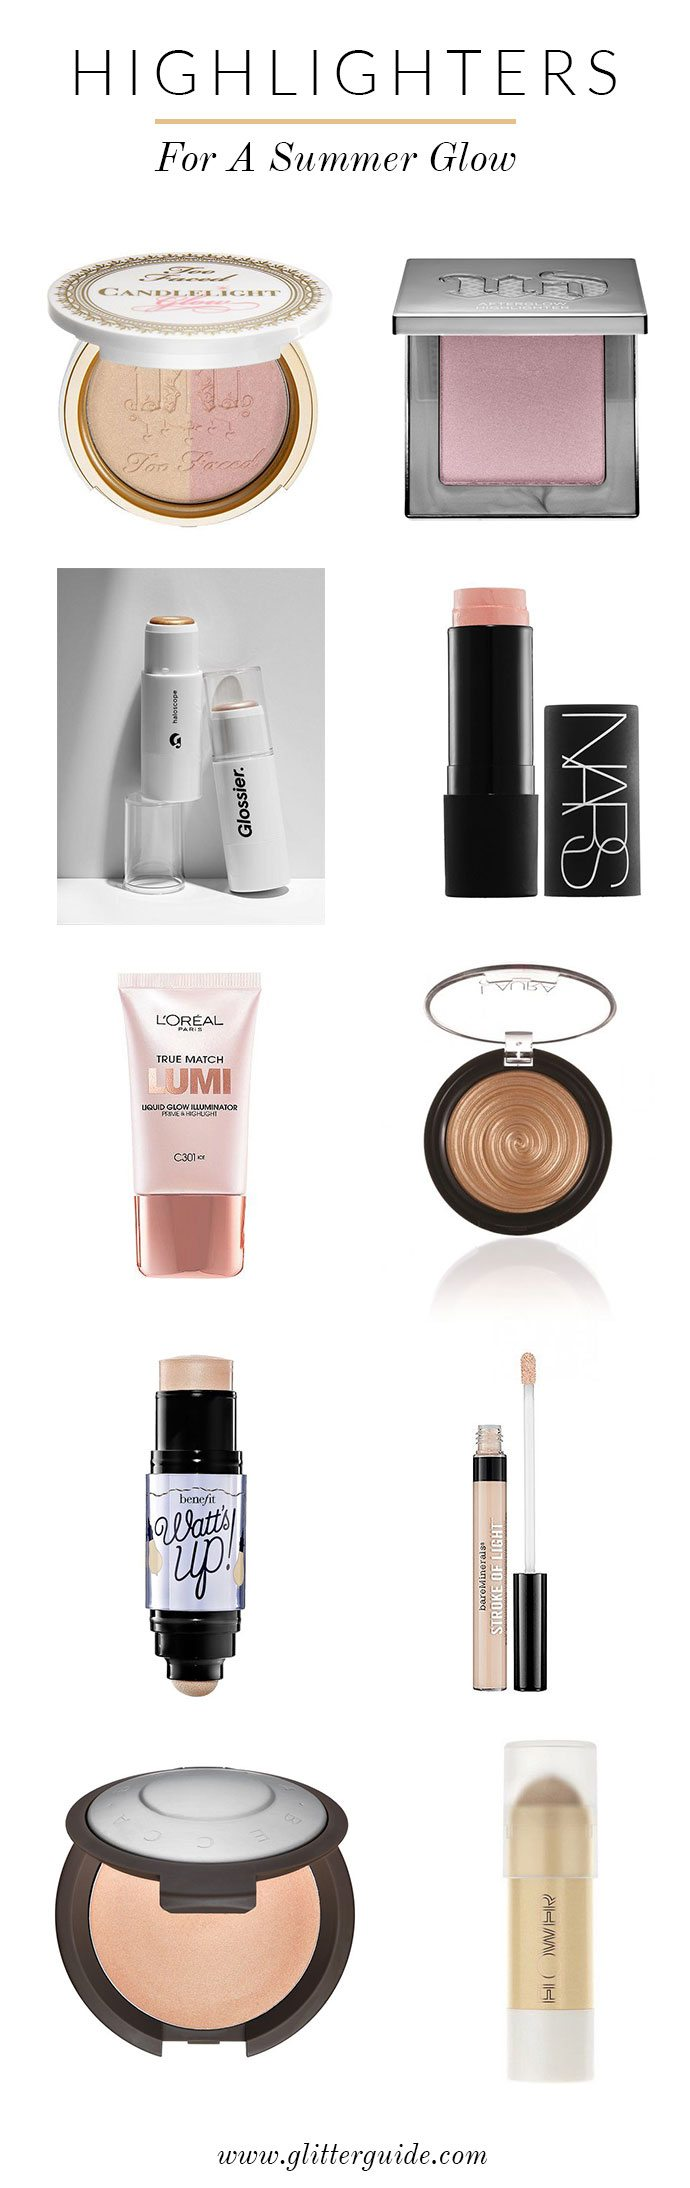 Highlighters-For-A-Summer-Glow